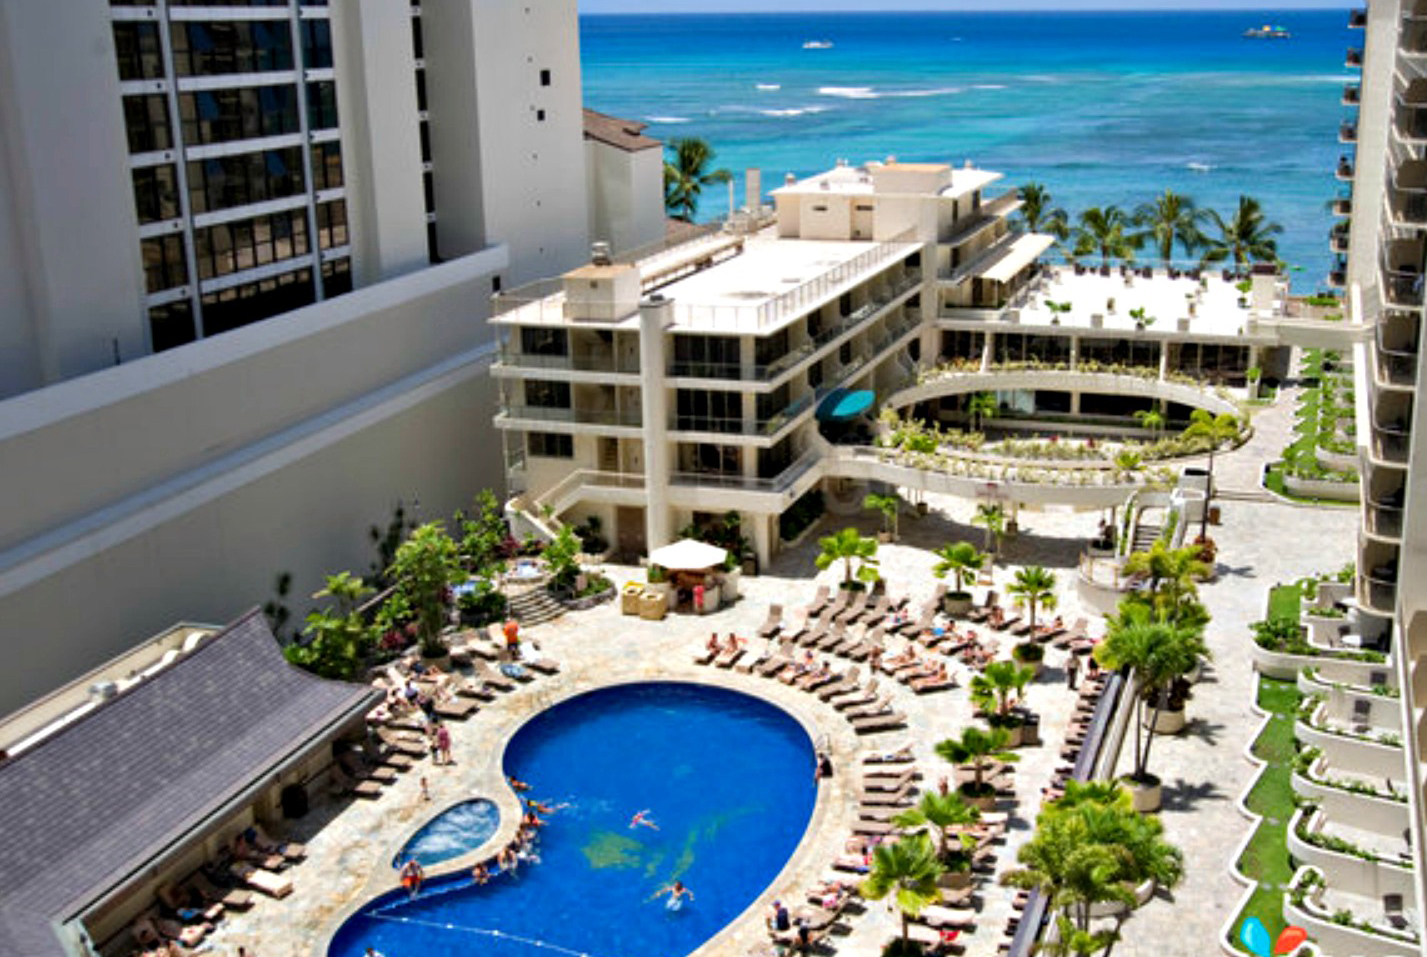 Hawaii Vacations All Inclusive Hawaii Vacation Packages To